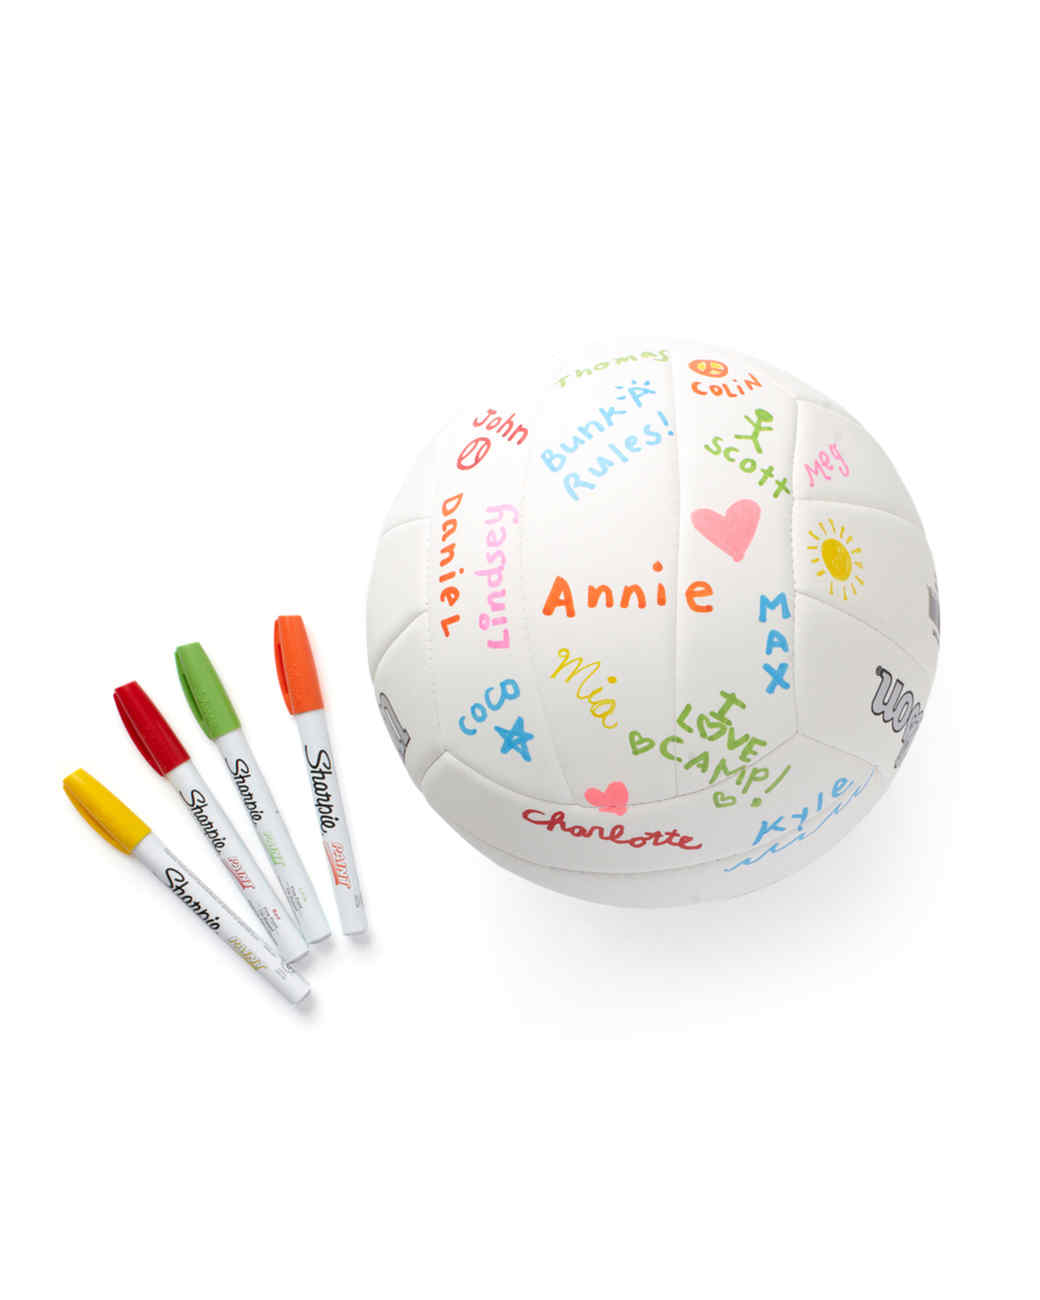 ld108988-doodle-on-volleyball-003.jpg